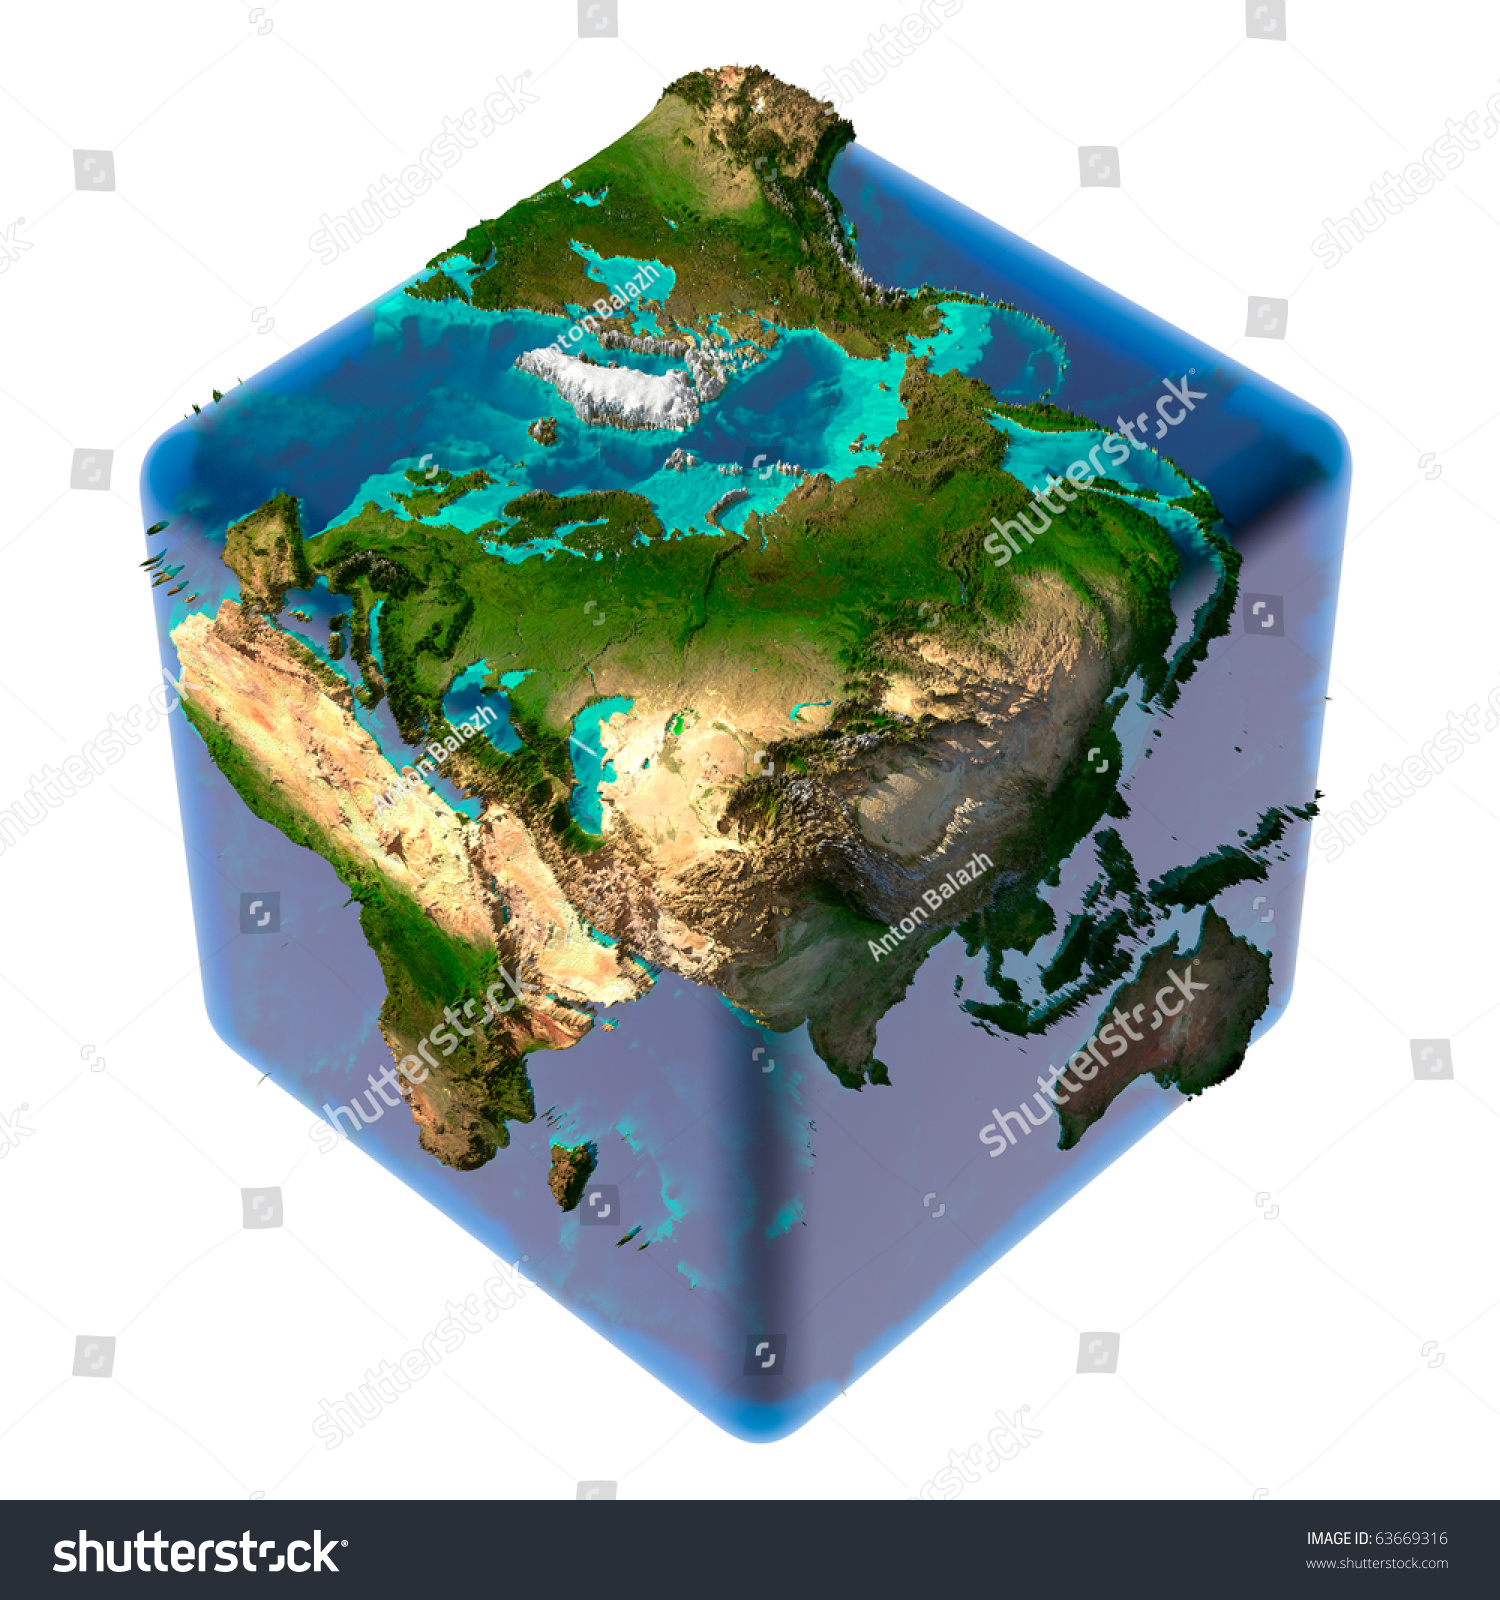 Earth cube translucent body water detailed stock illustration earth as a cube with translucent body of water and a detailed relief map of the sciox Gallery